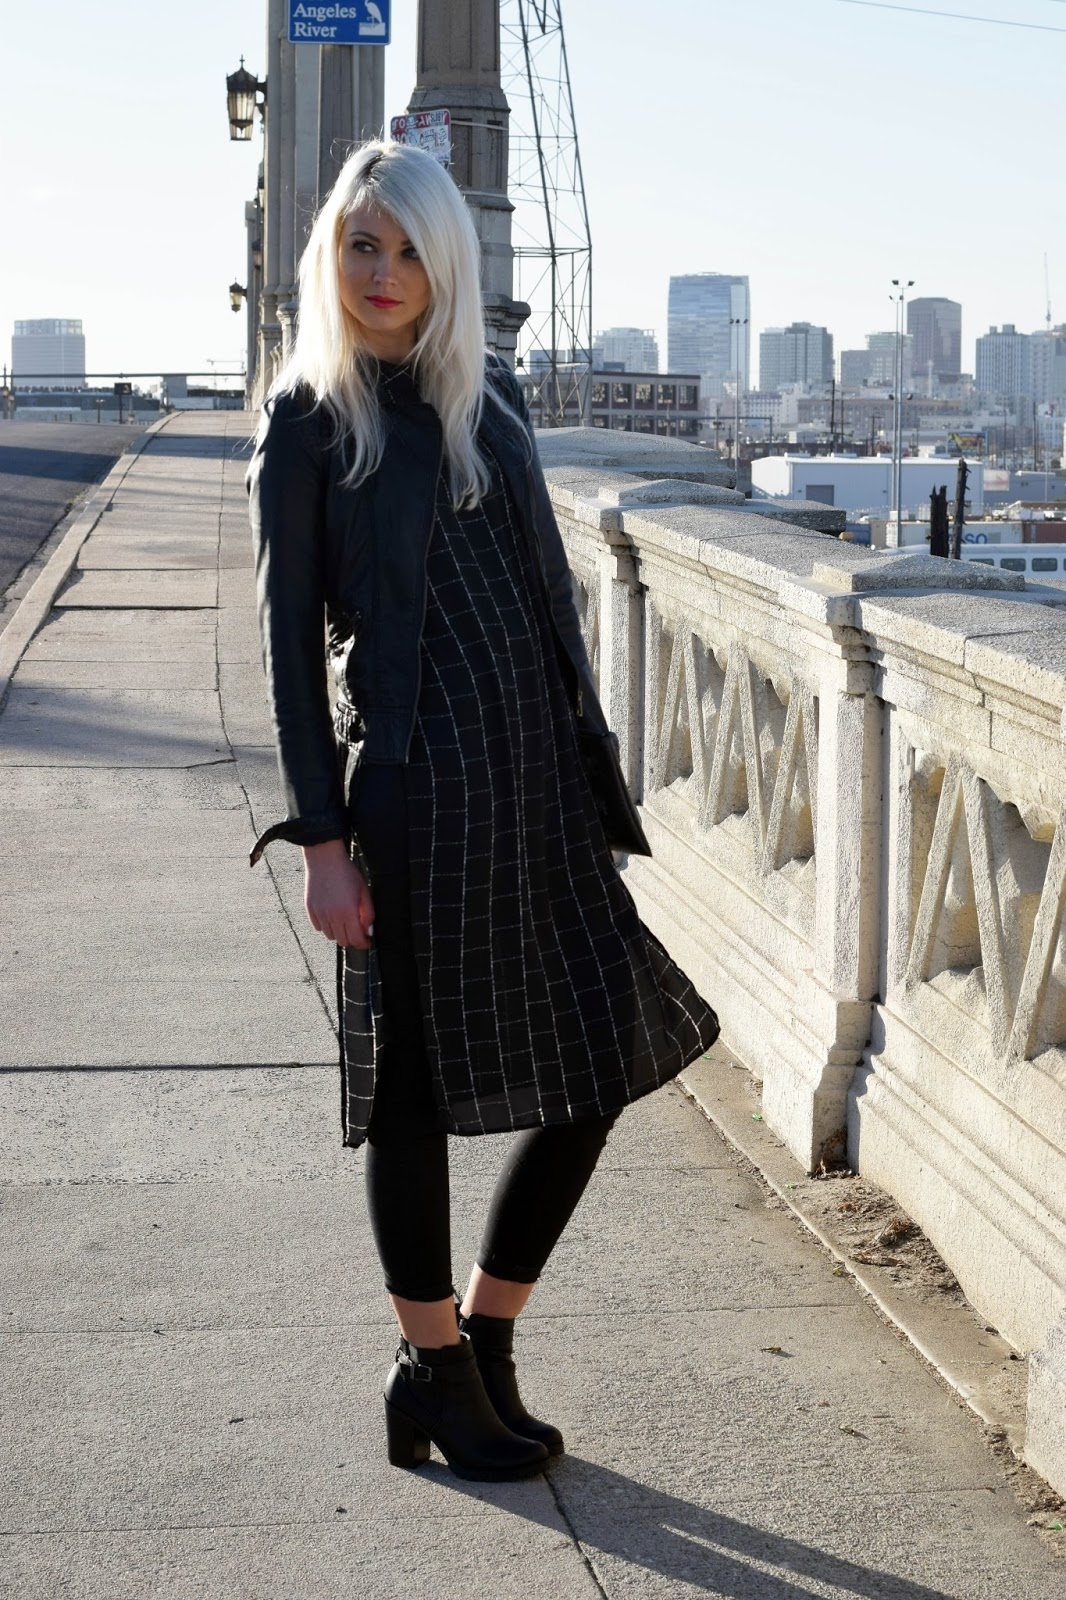 long blouse, german blondy, how to style a long blouse, teen 17 fashion, los angeles